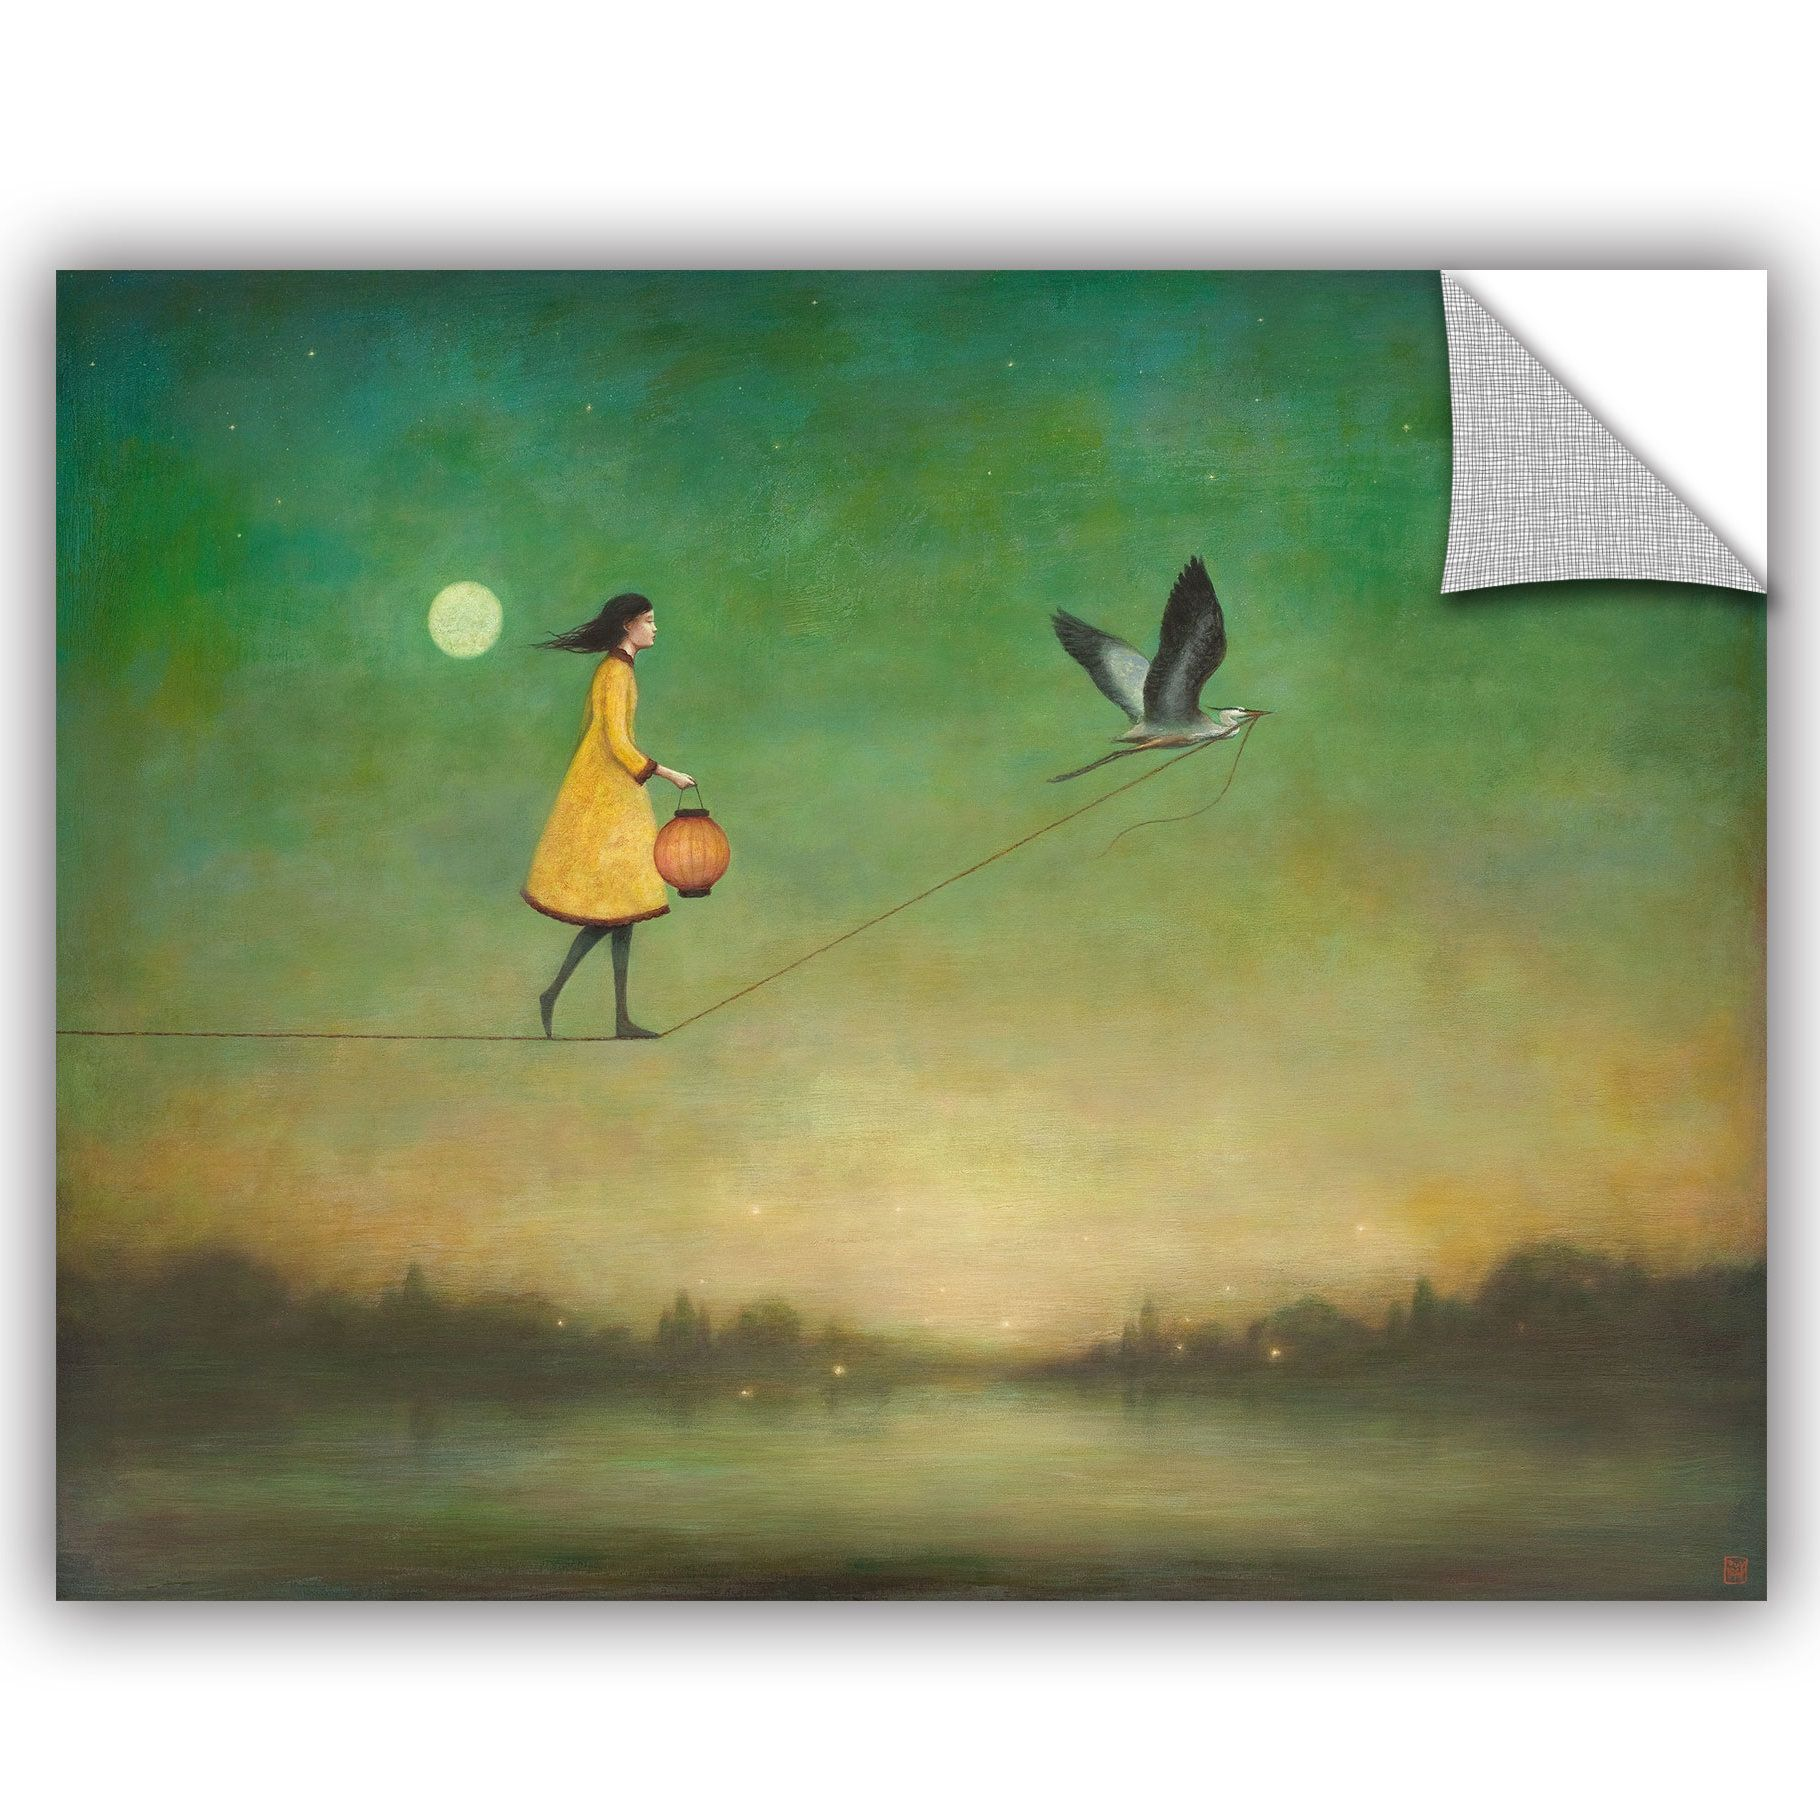 Duy huynh blue moon expedition wall decal pinterest blue moon